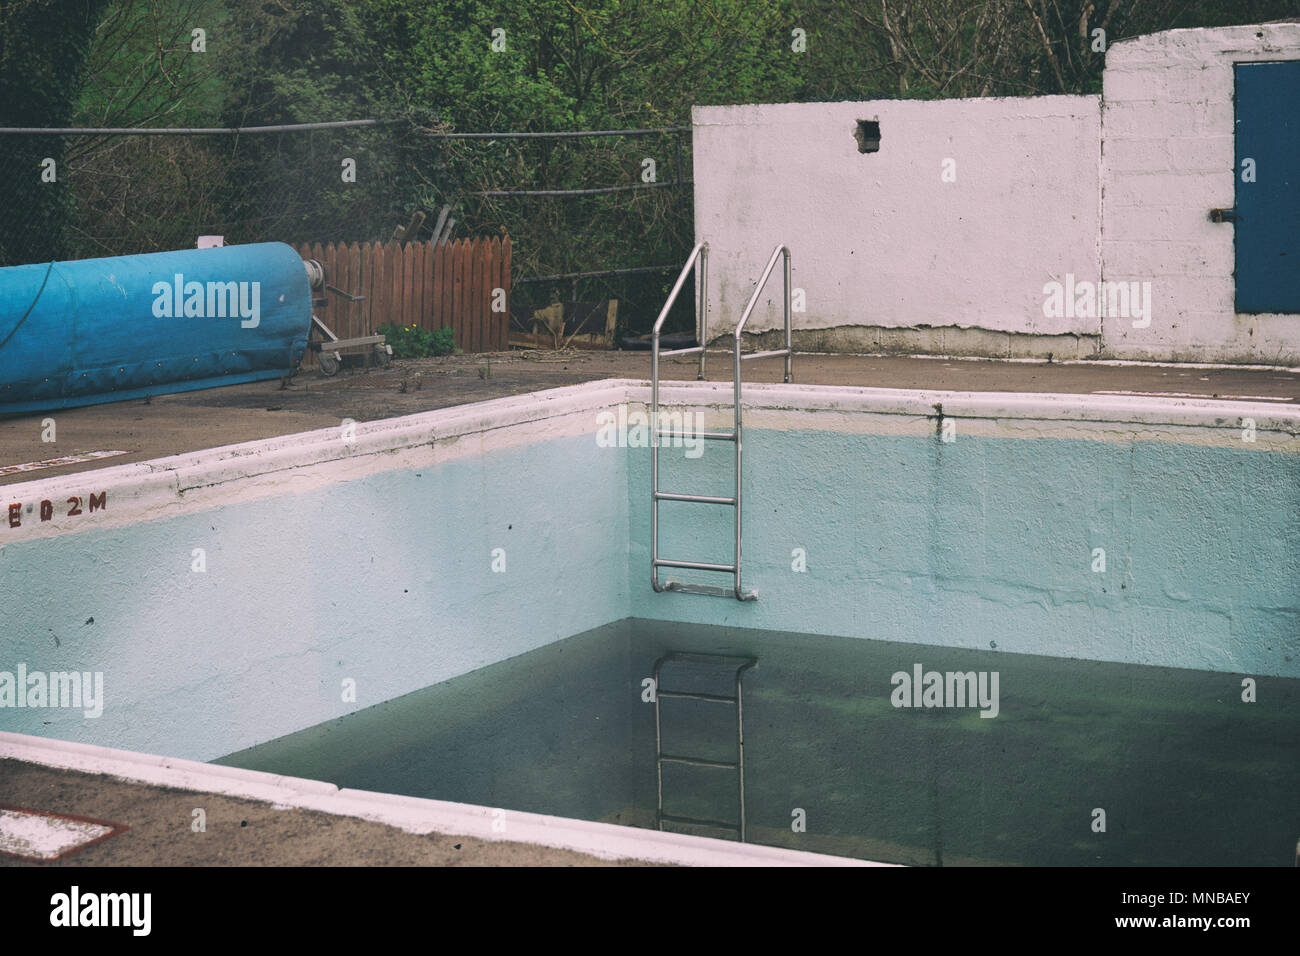 An Abandoned And Dirty Pool With Black Water Stock Photo Alamy